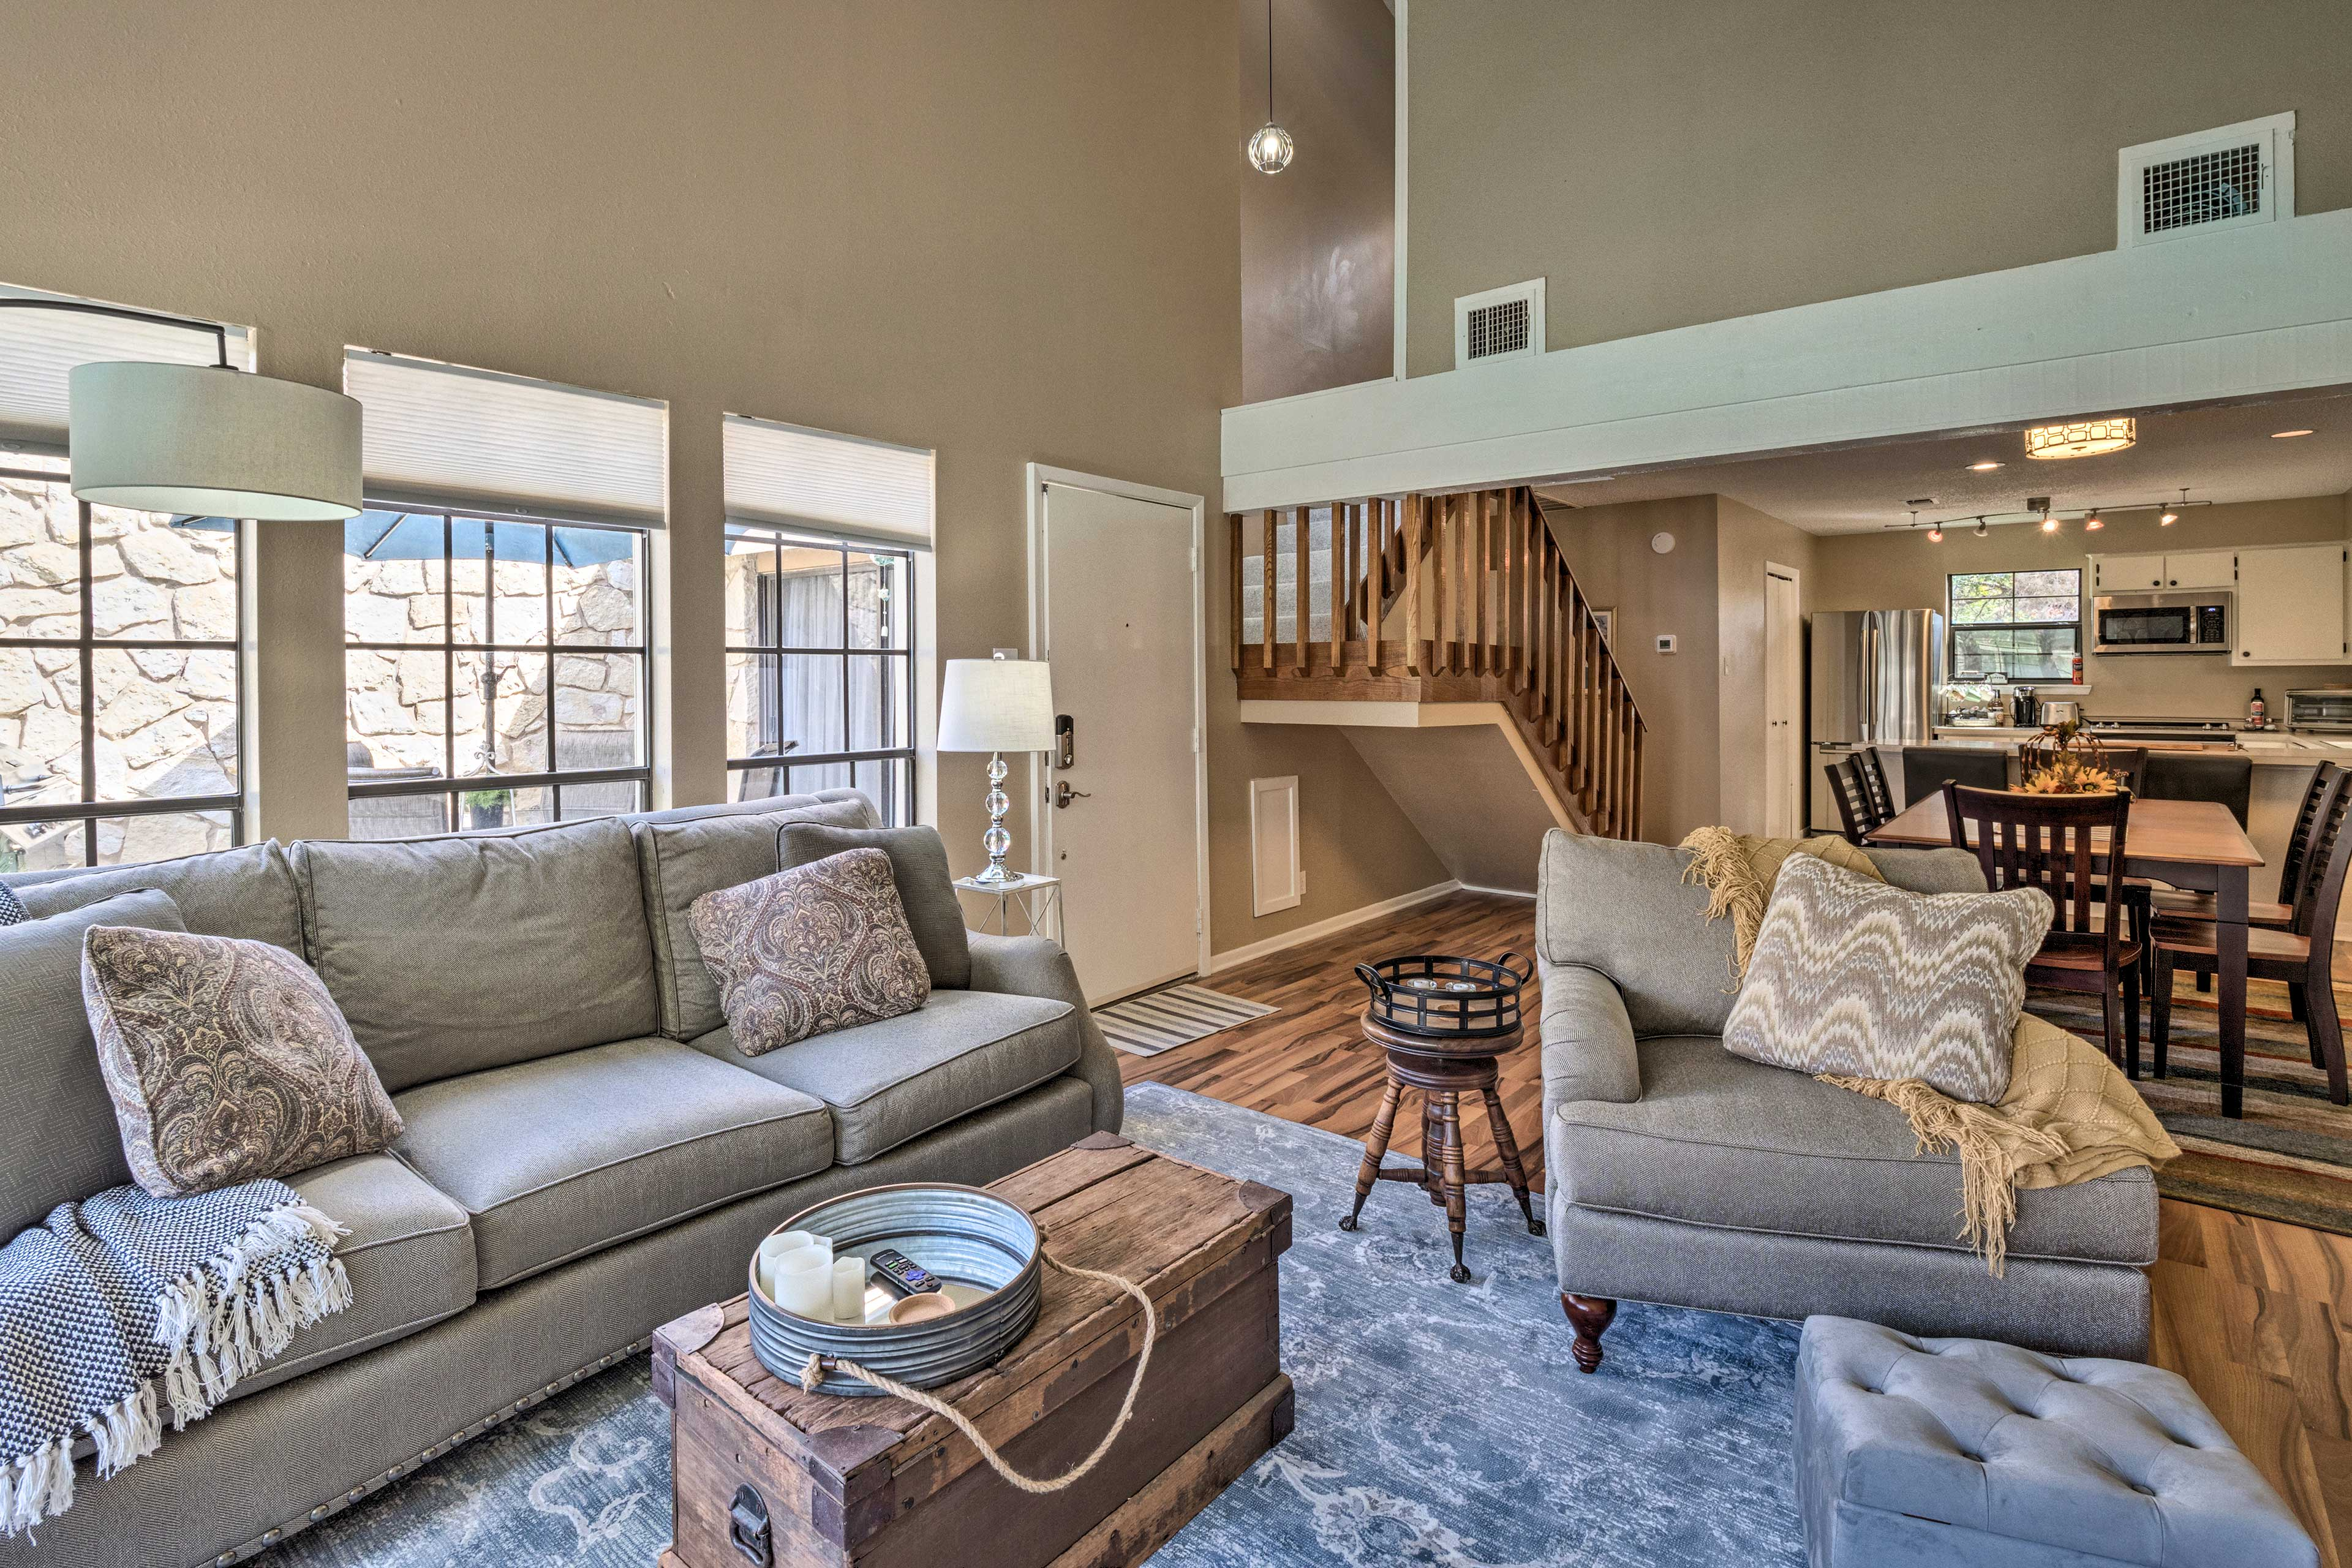 The high ceilings allow the living room to feel very spacious.